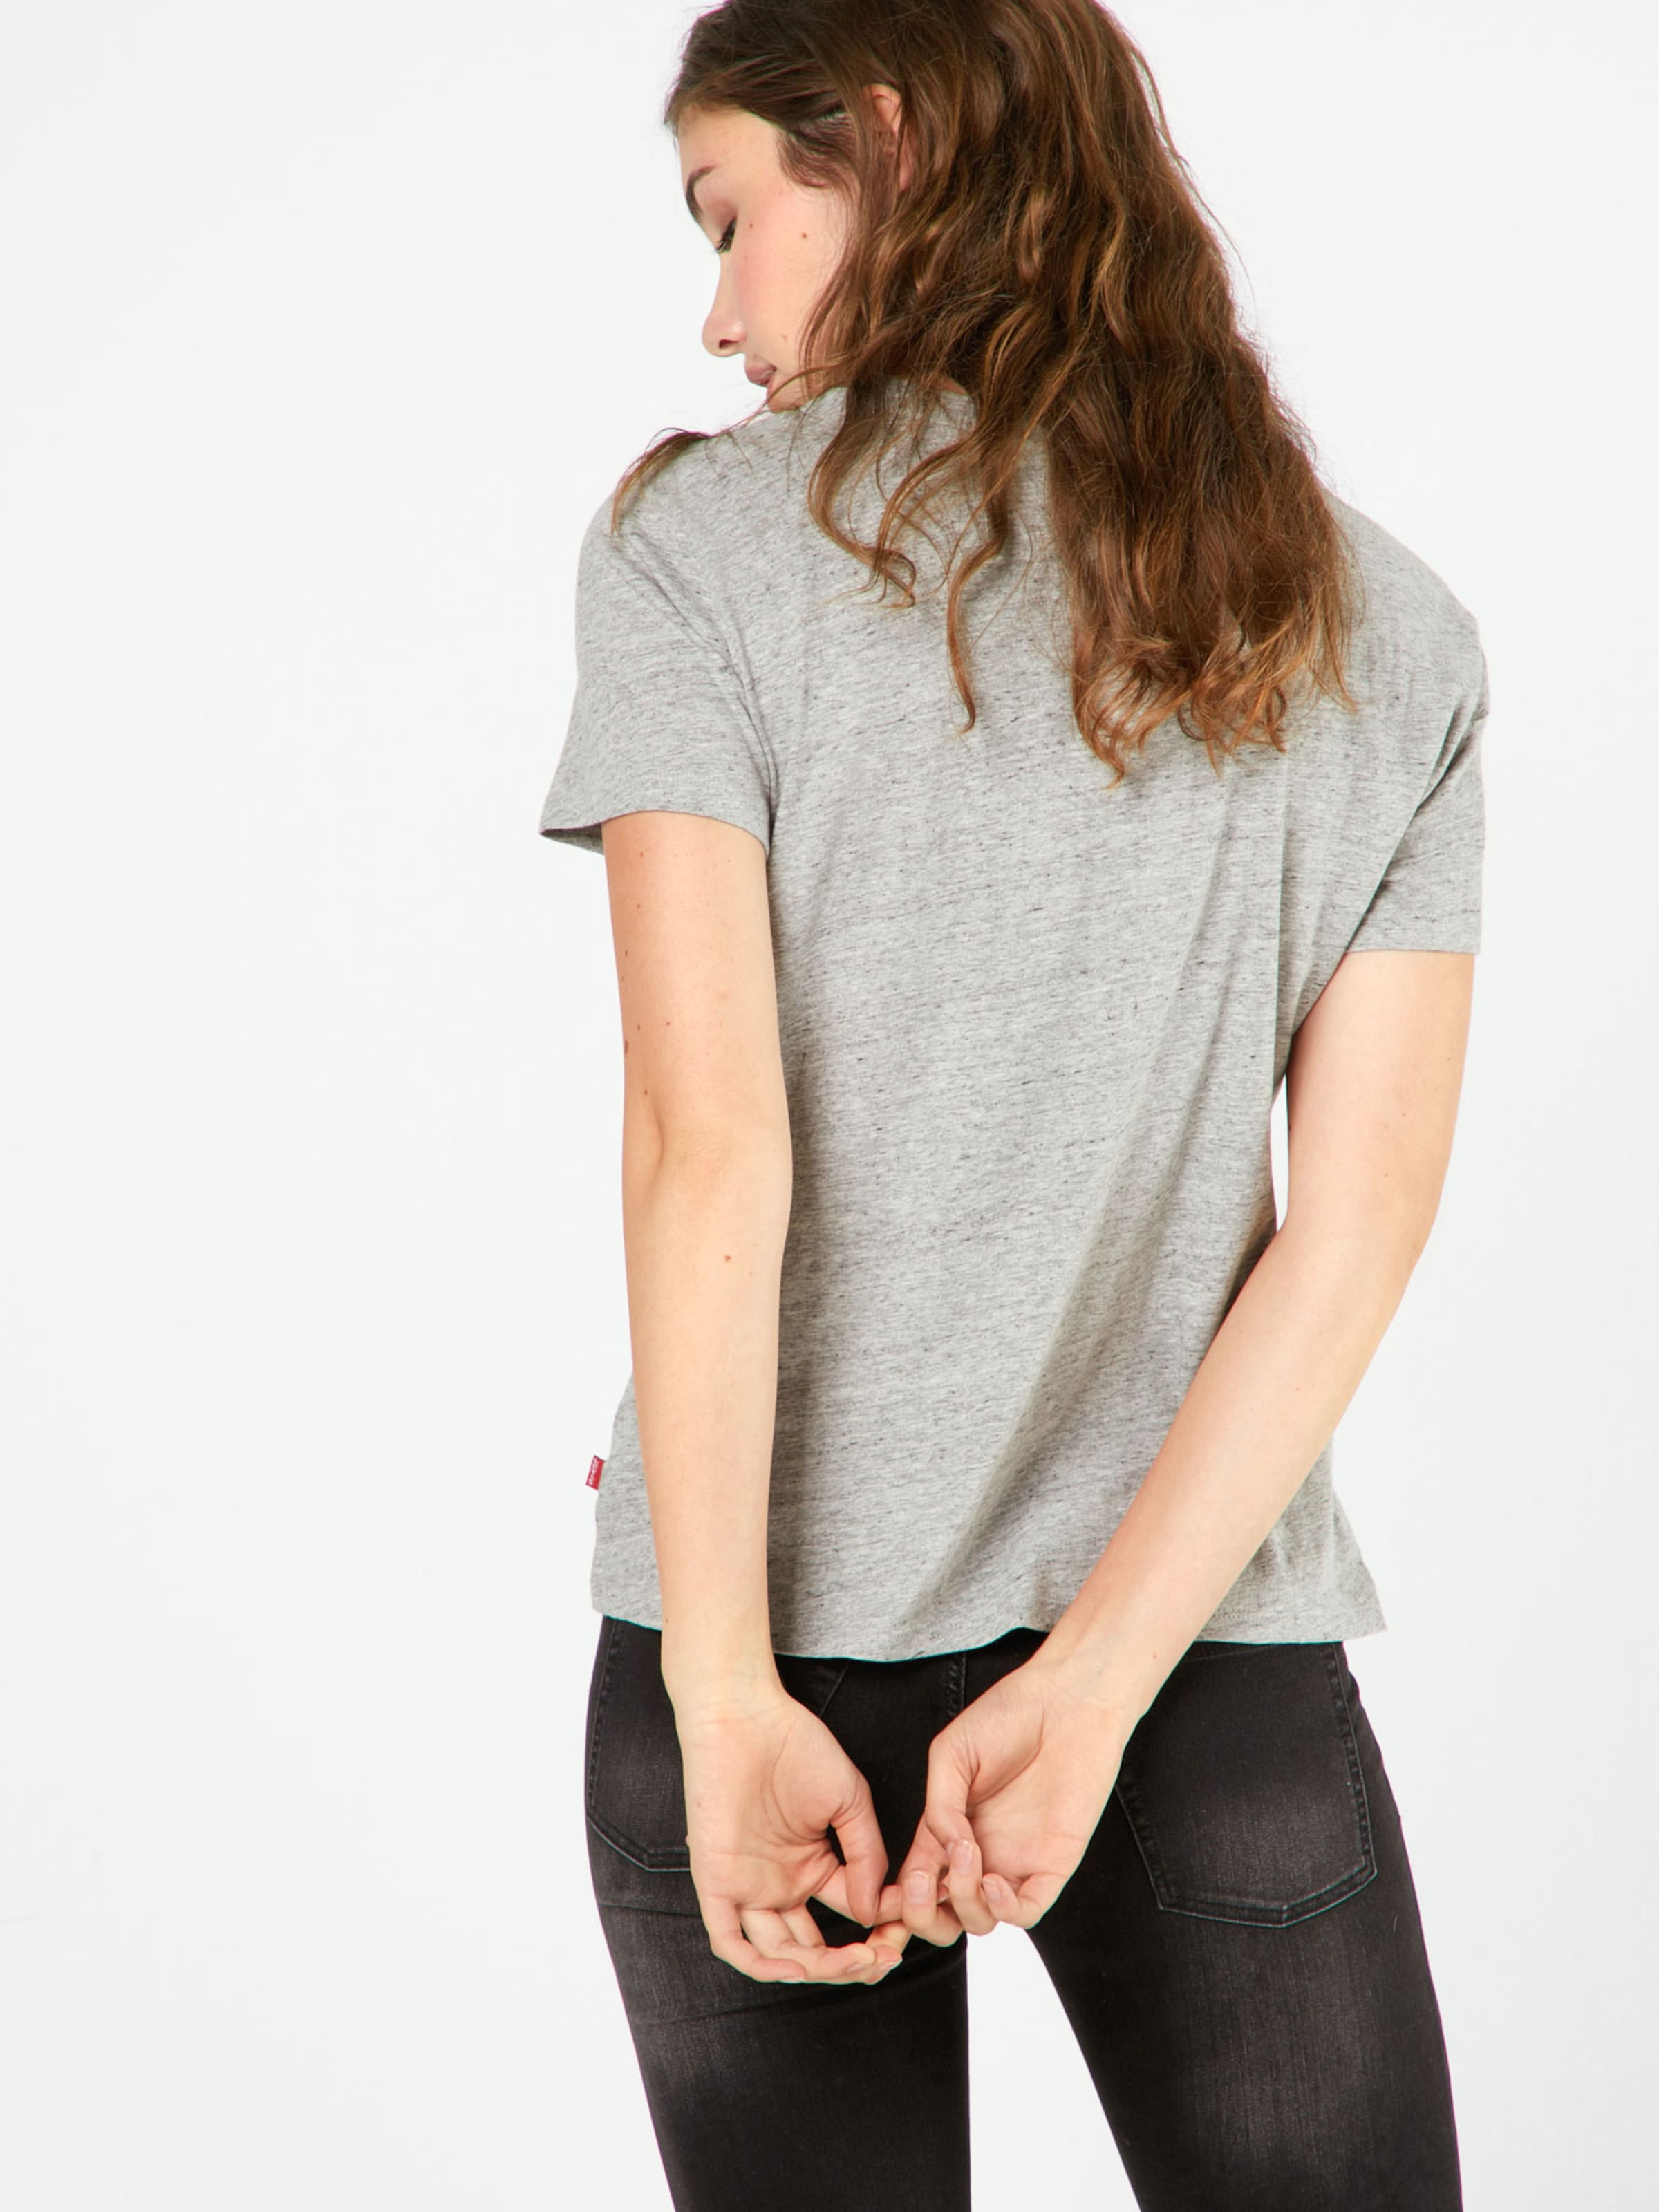 Levi's En Perfect Batwing' Gris T Tee ChinéRouge Carmin 'the Large shirt e2EIDHYbW9